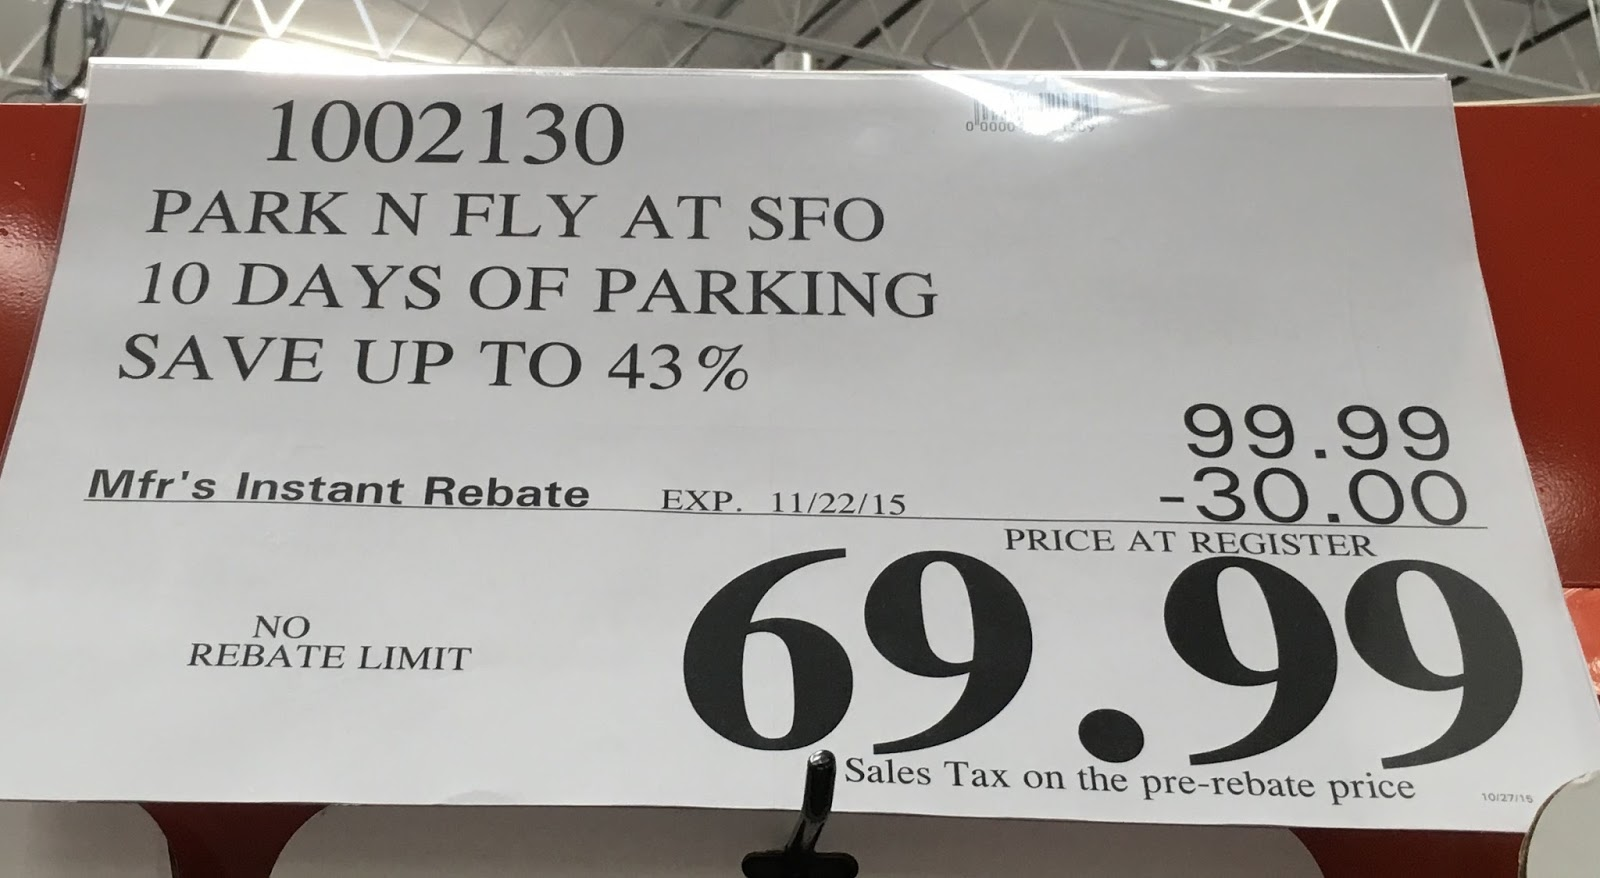 Sfo parking coupon park and fly